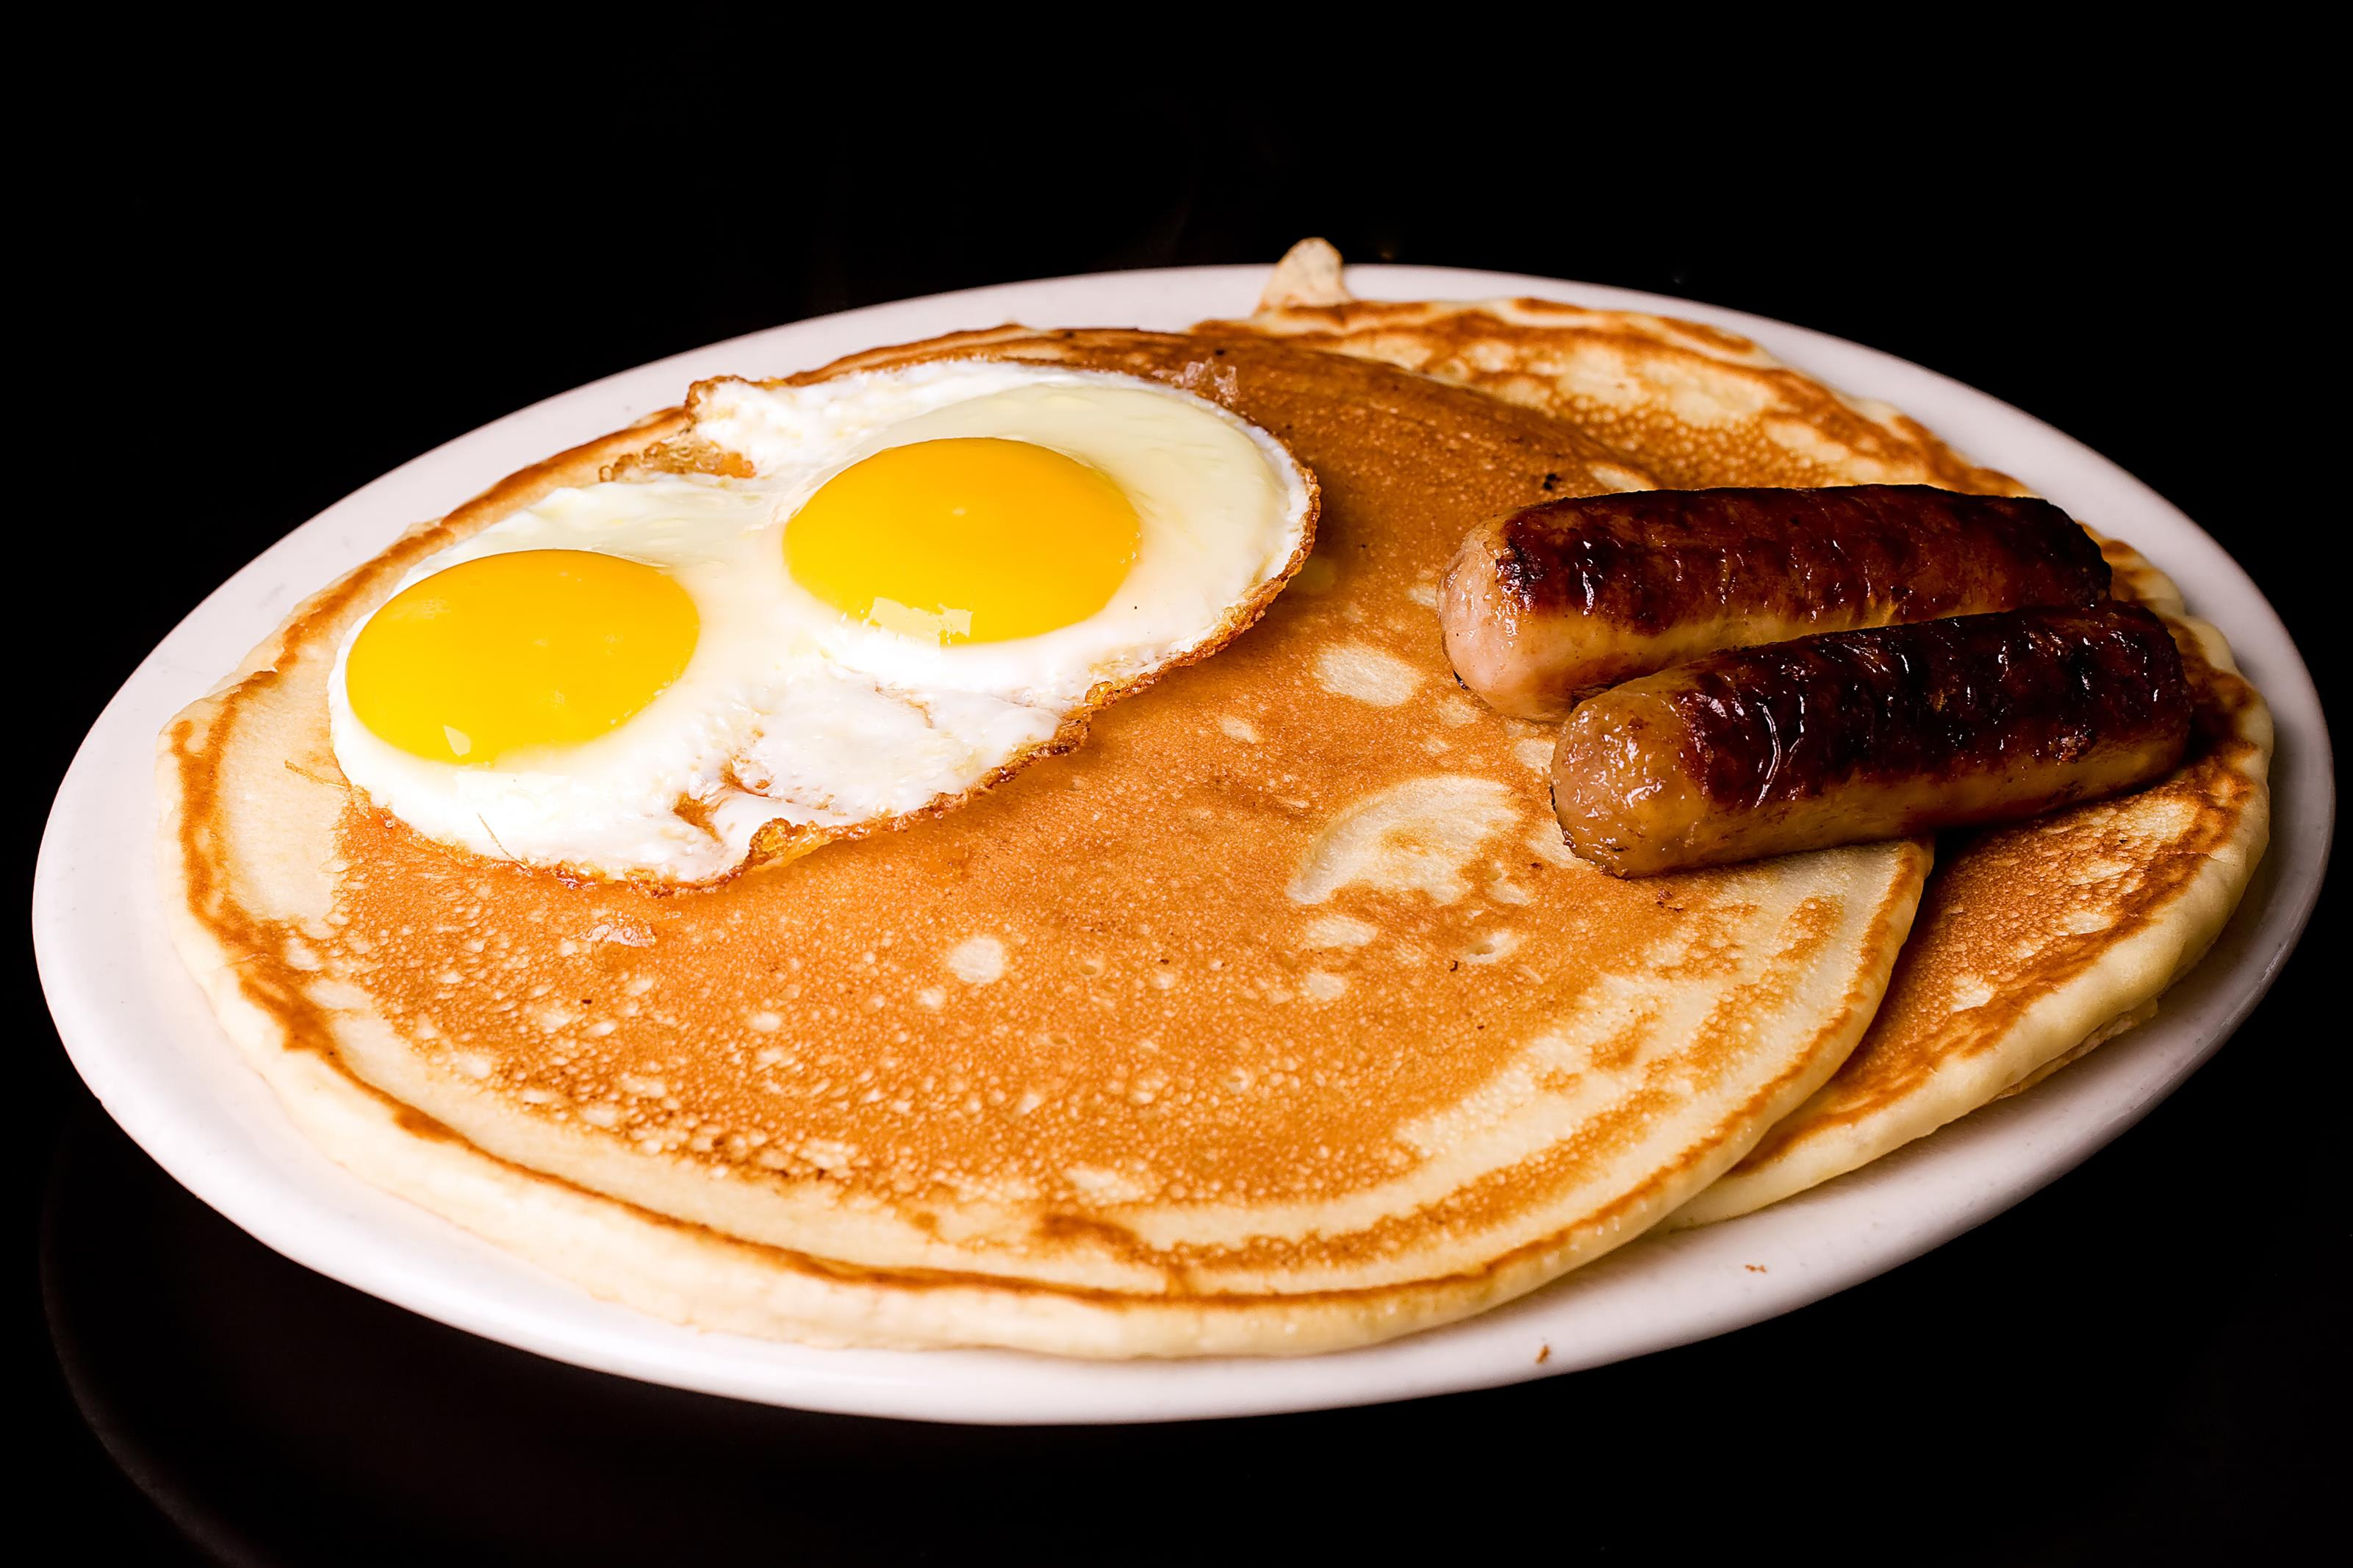 Pancakes, sausage, over easy eggs